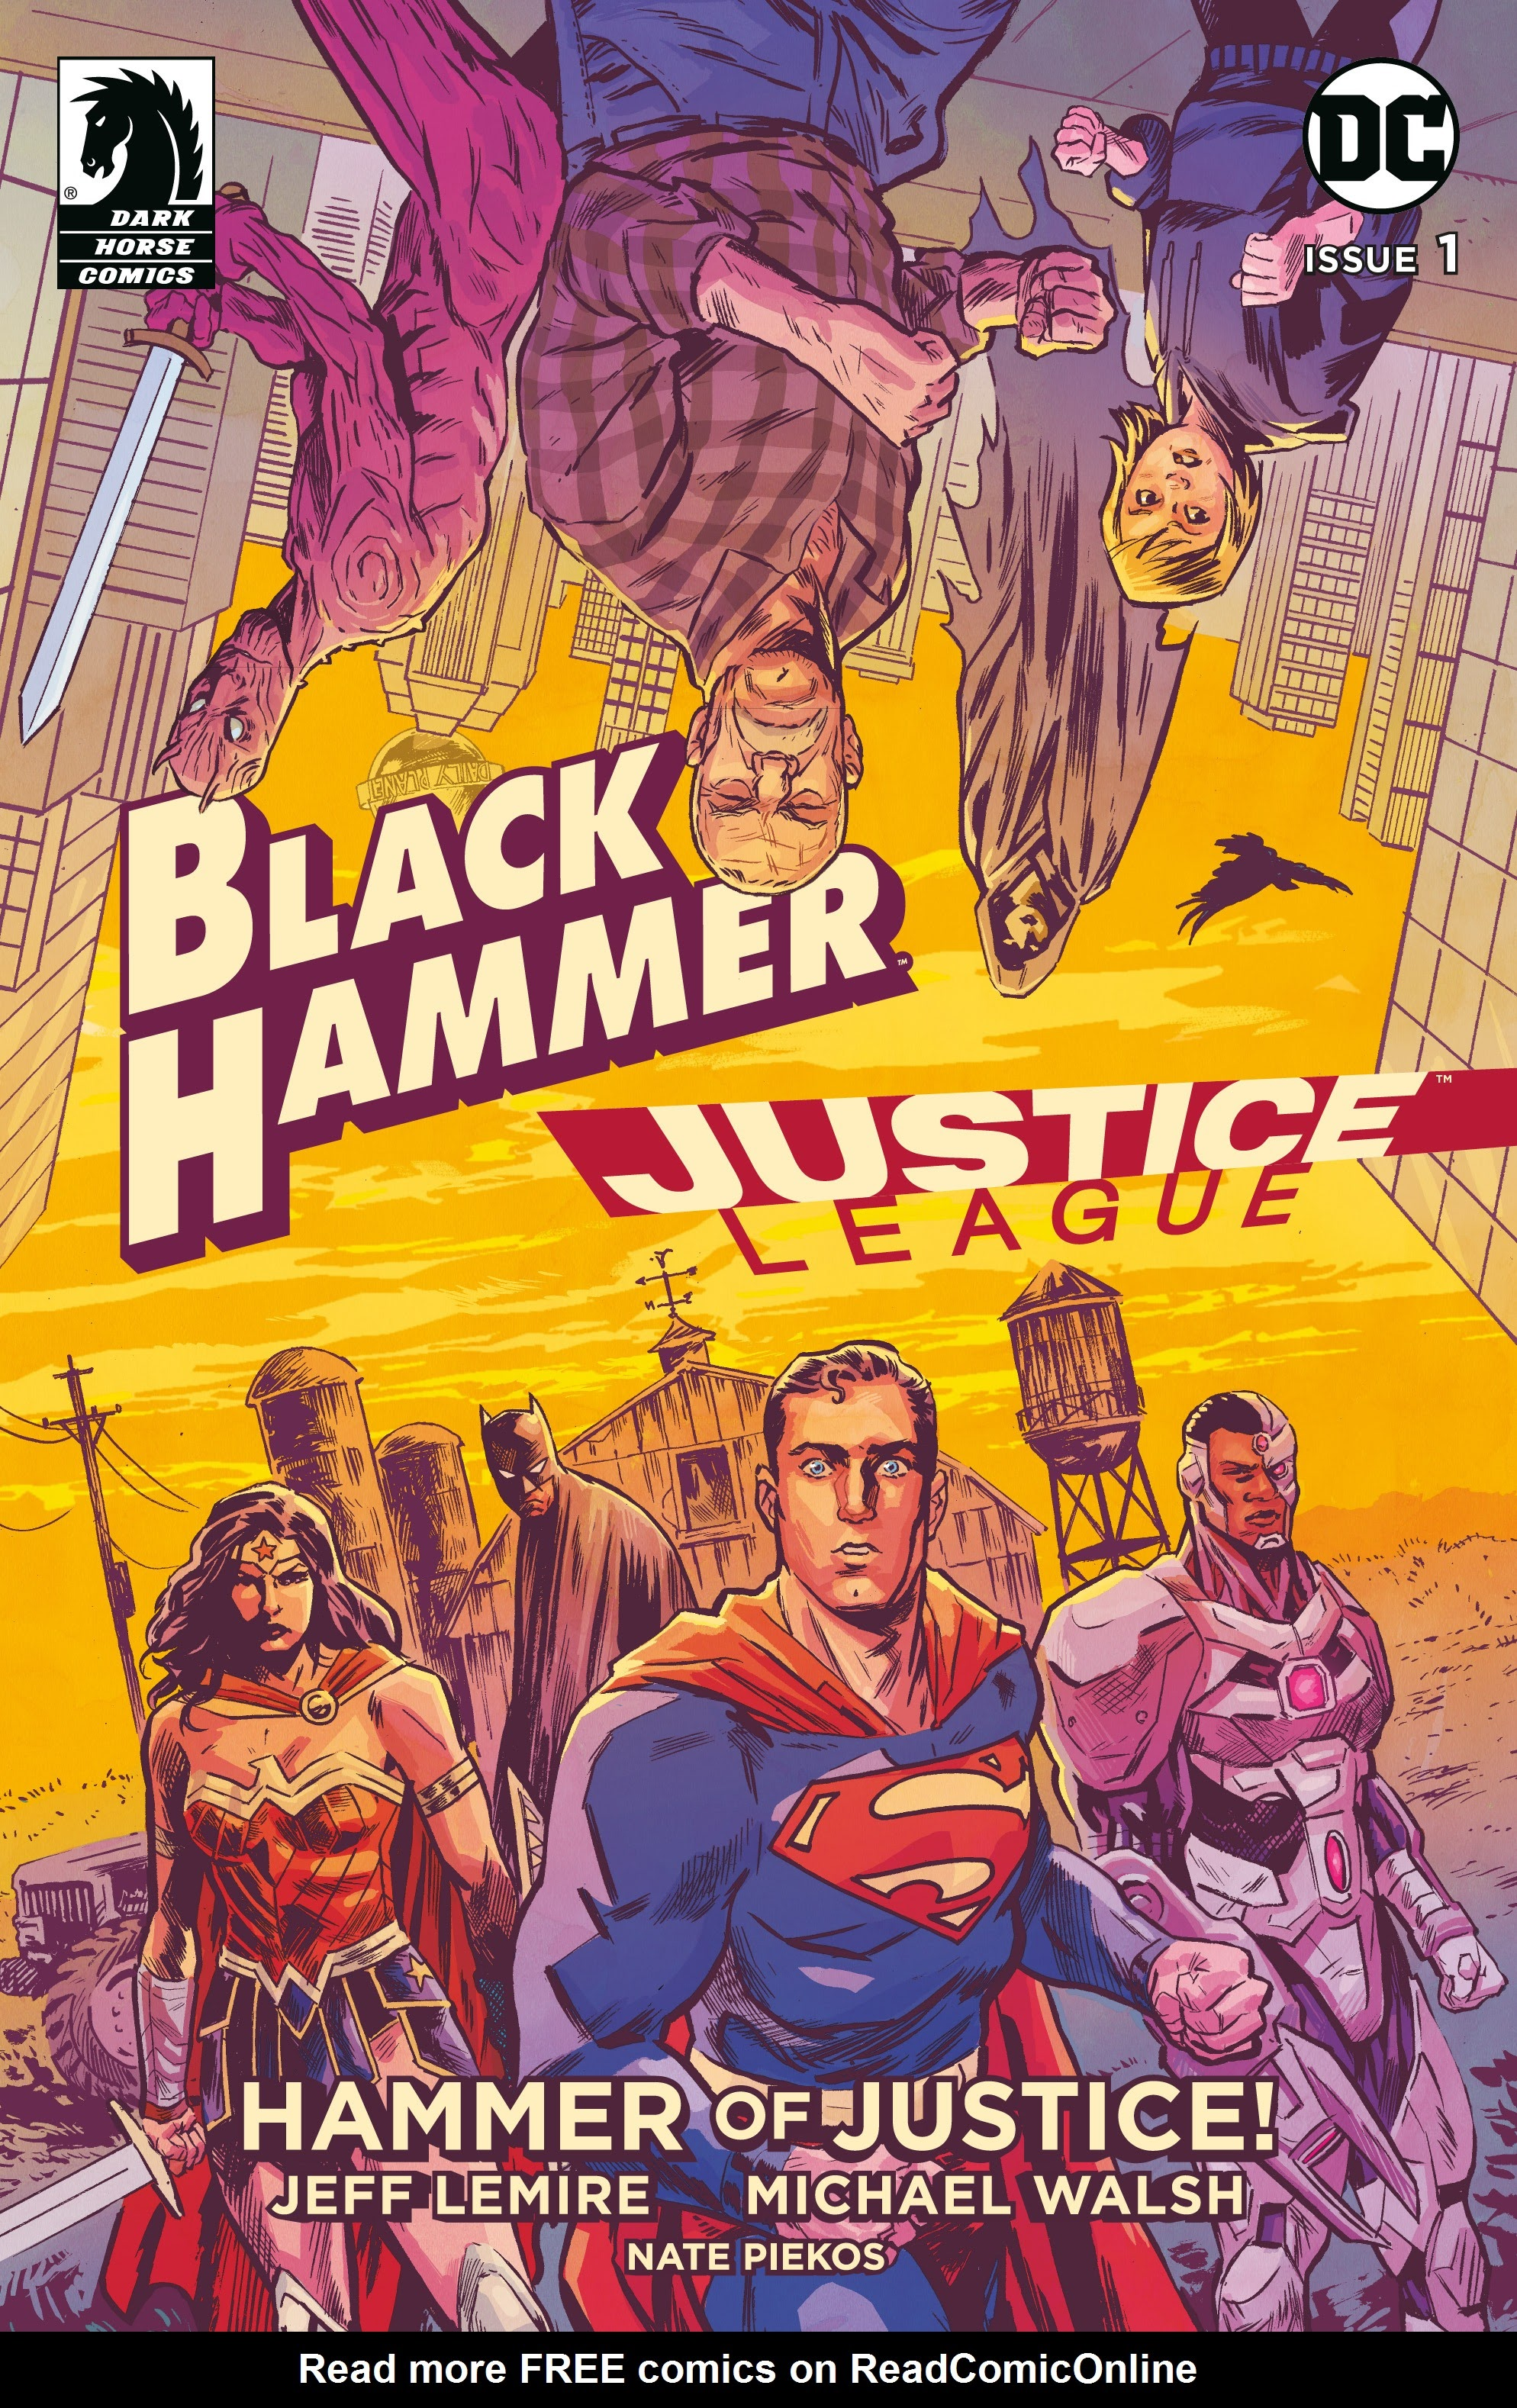 Black Hammer/Justice League: Hammer of Justice! 1 Page 1